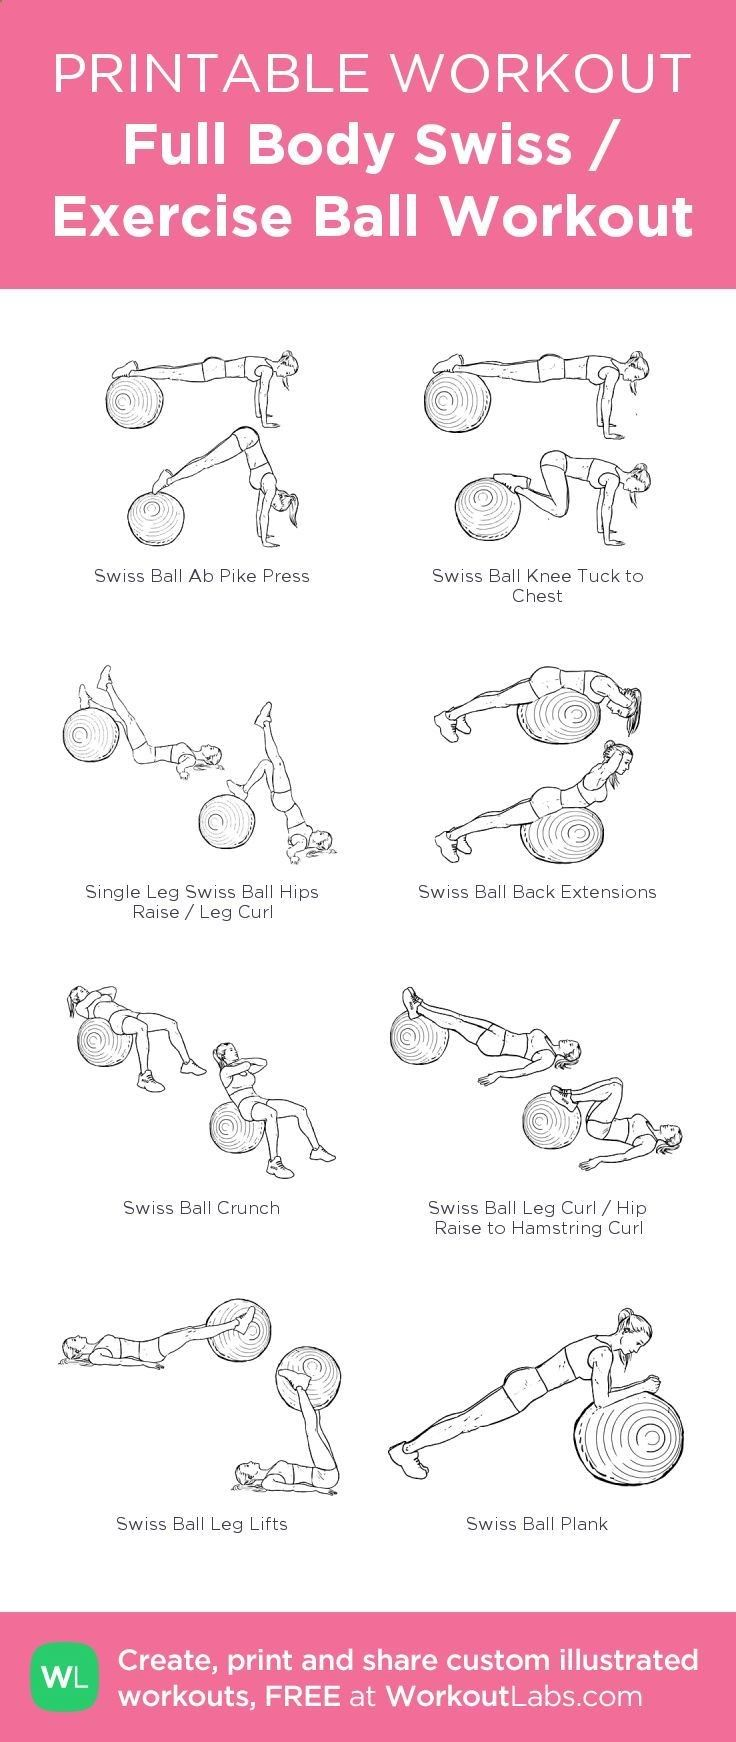 Full Body Swiss / Exercise Ball Workout –my custom workout created at WorkoutLabs.com • Click through to download as printable PDF! #customworkout